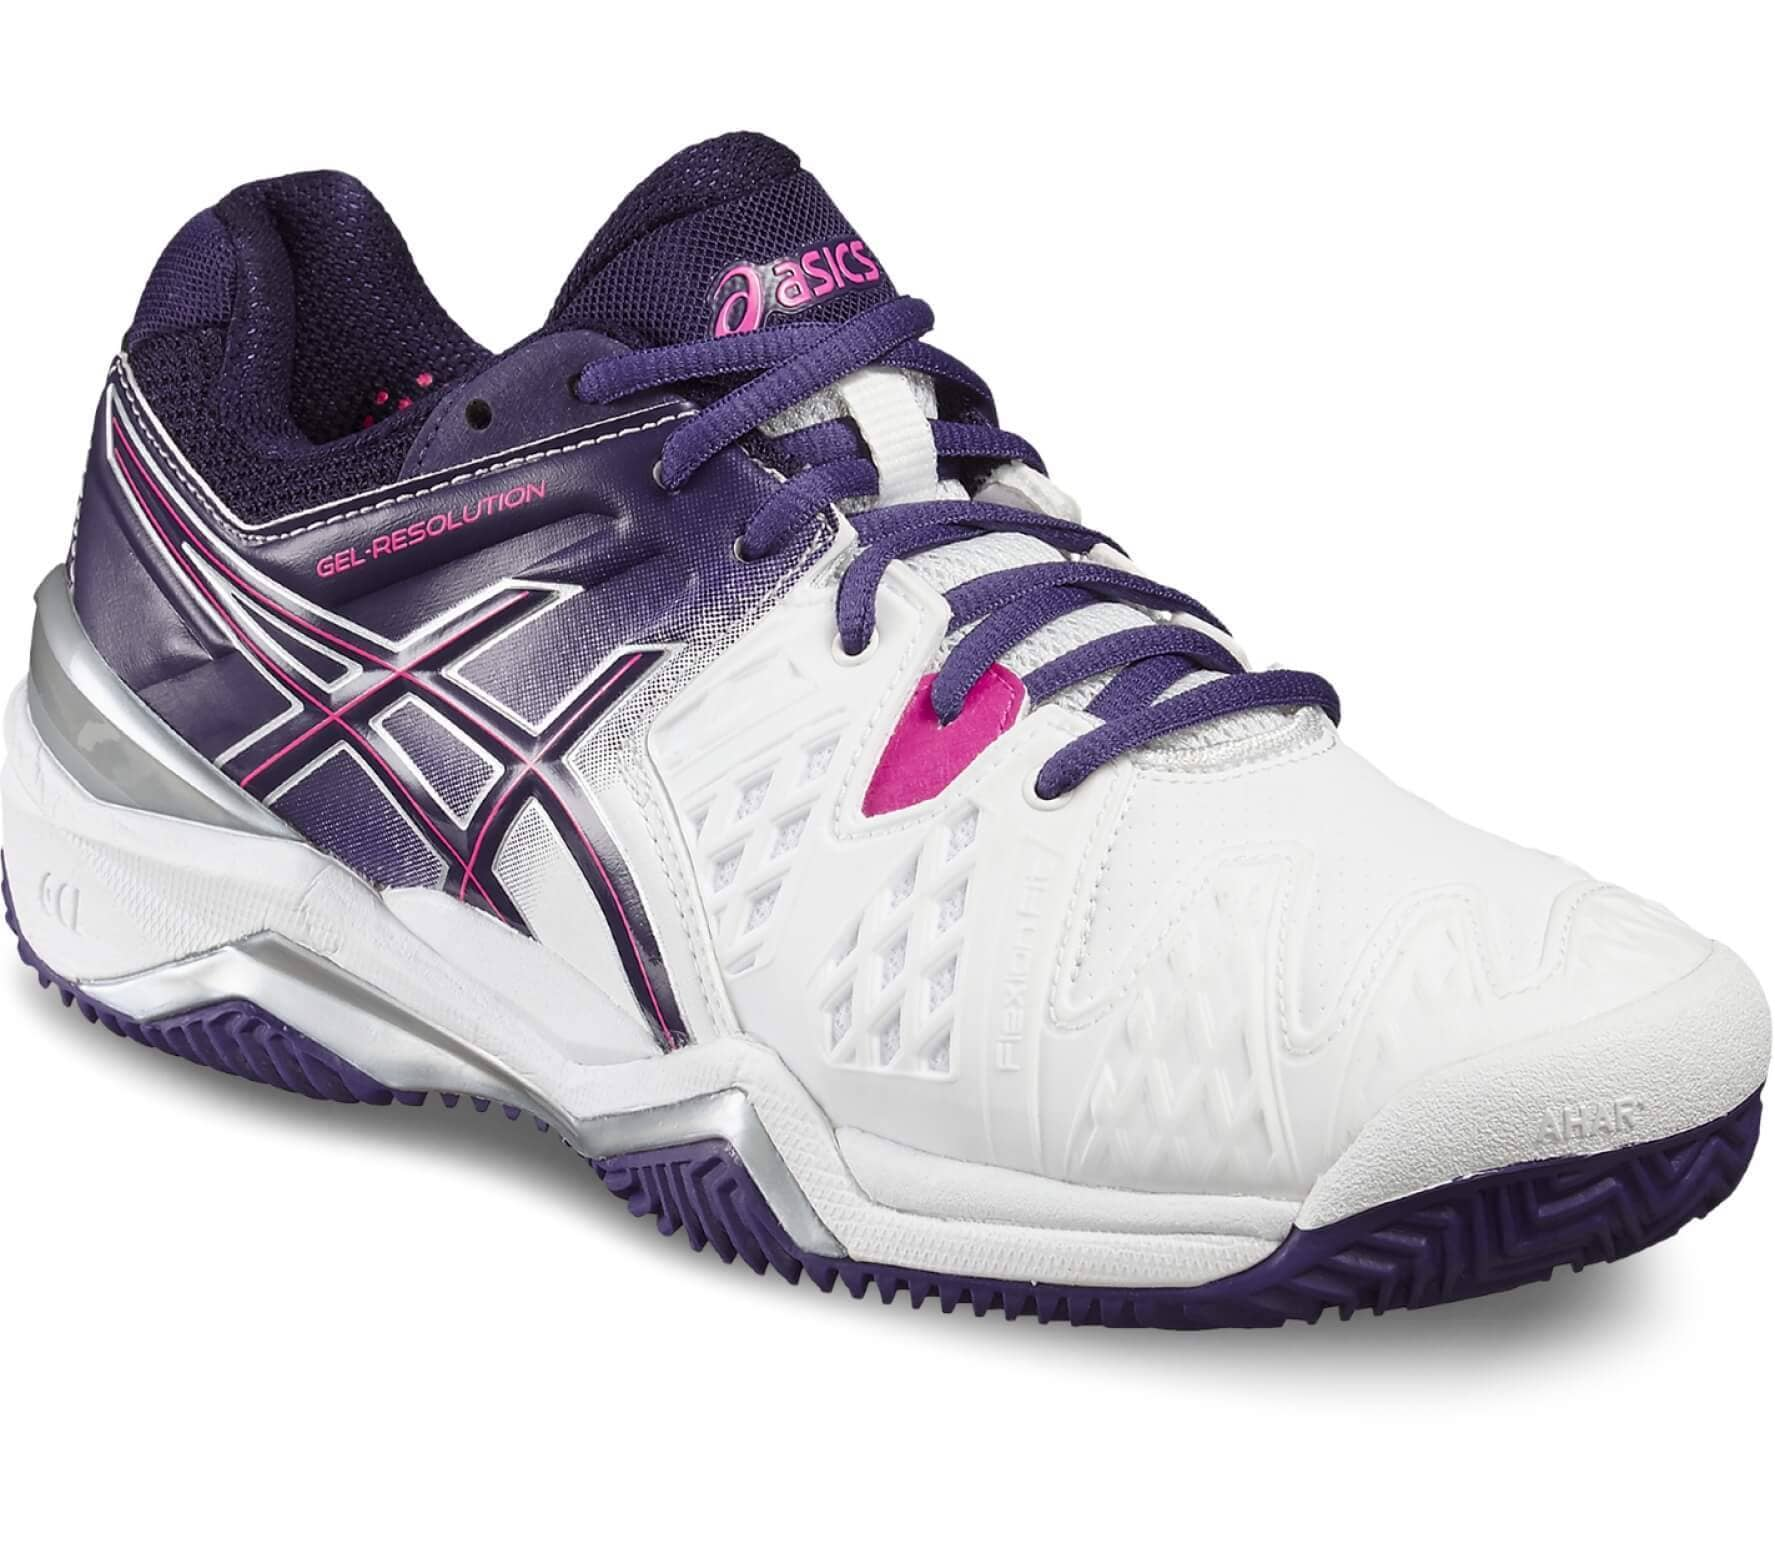 f0d523084 ASICS - Gel-Resolution 6 Clay women s tennis shoes (white pink ...